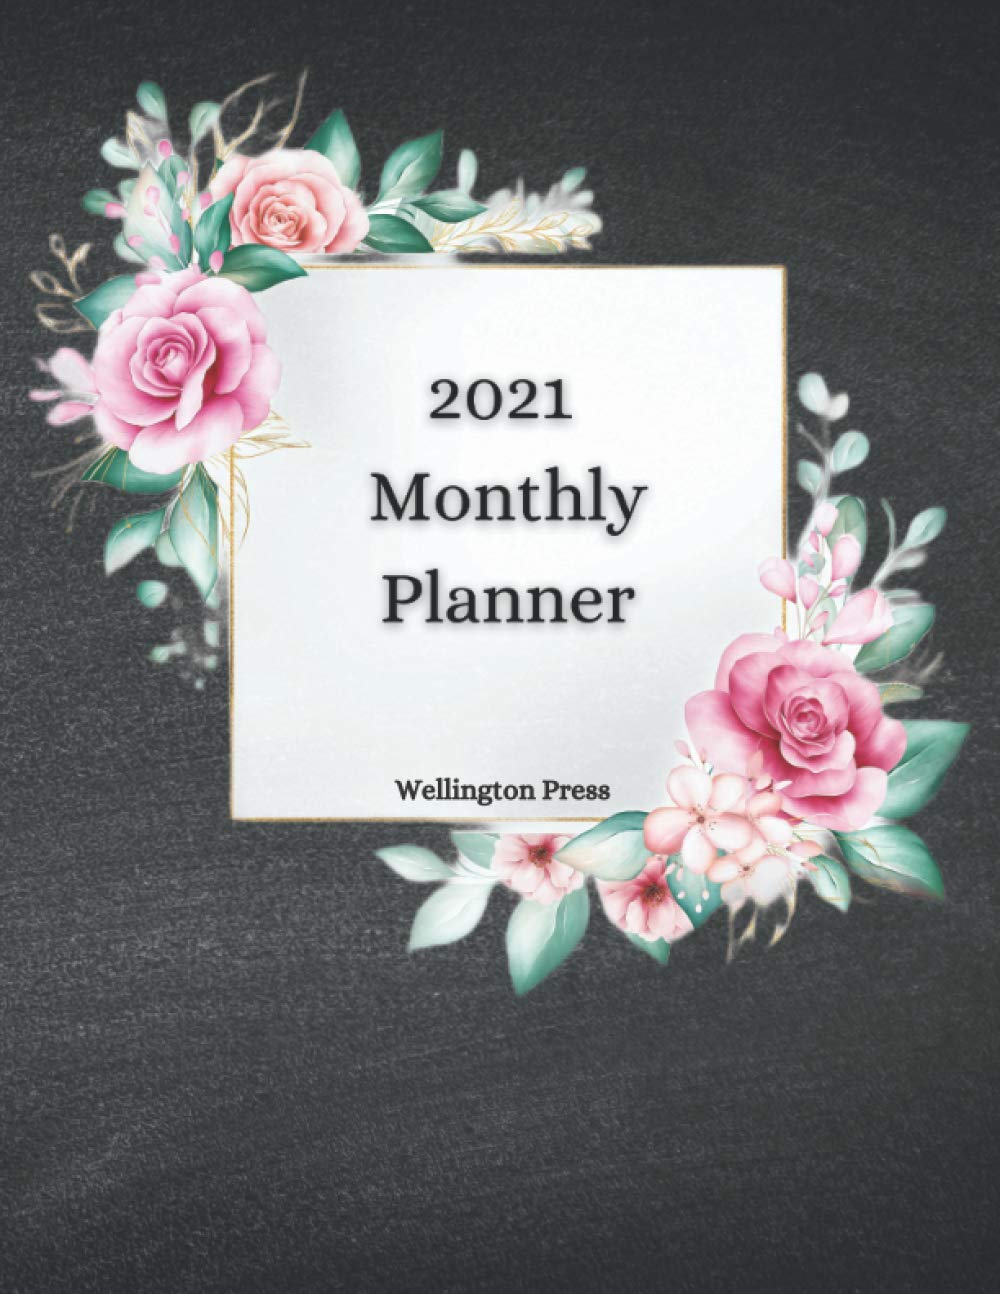 Image result for 2021 Monthly Planner: US Holidays, Full Write-In Monthly Calendars, Monthly Goals, End-Of-Mon Reflections, & More!